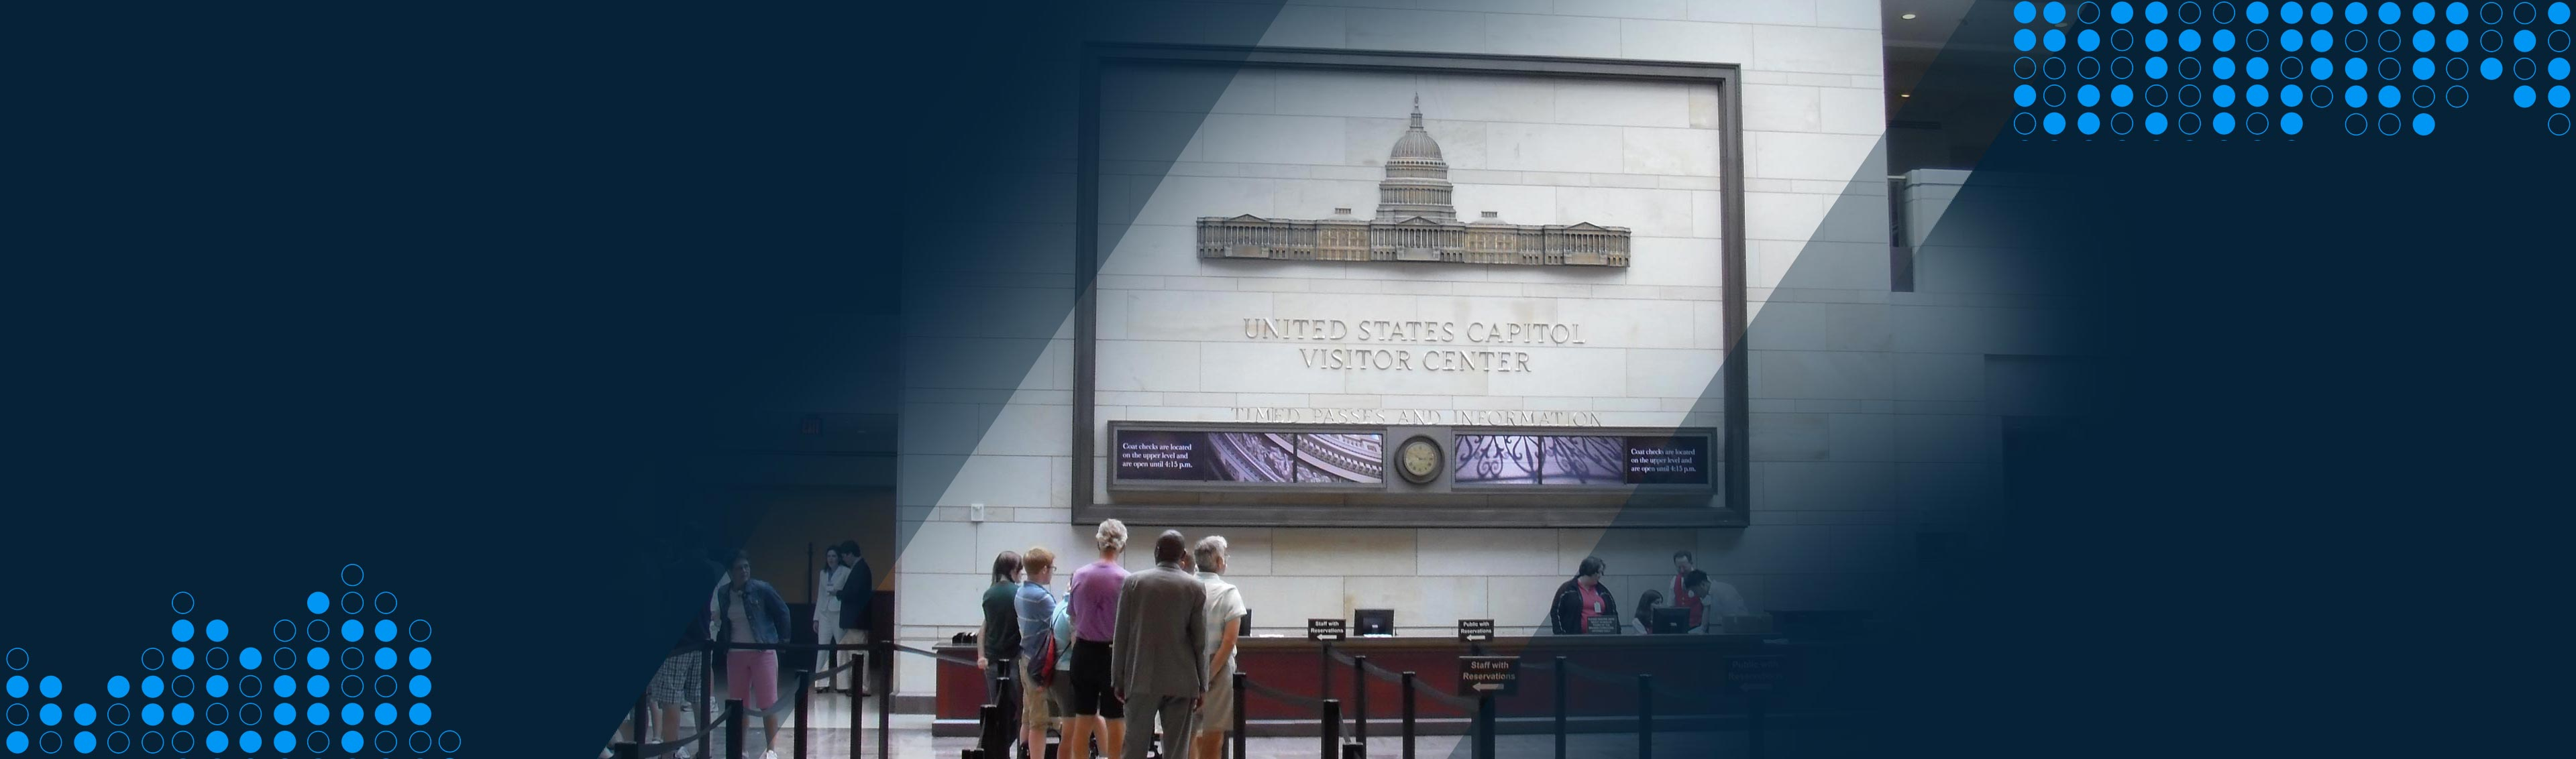 digital screens in government building